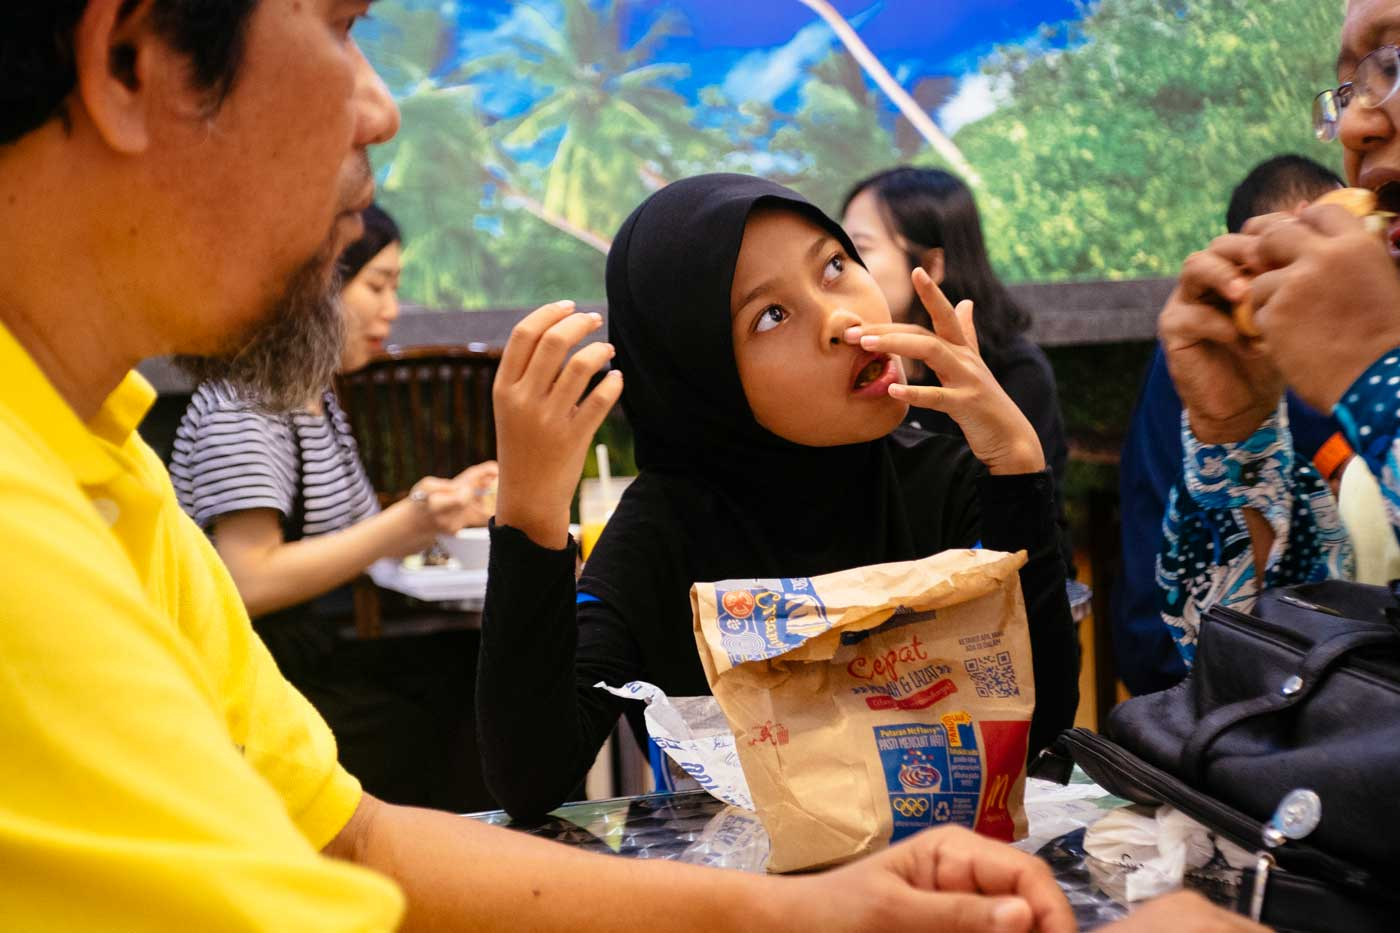 travel-kuala-lumpur-malaysia-2015-fujifilm-xe1-ms-optical-optics-super-perar-35mm-f3.5-3.5-street-snap-portfolio-blog-curious-enjoying-meal-fast-food